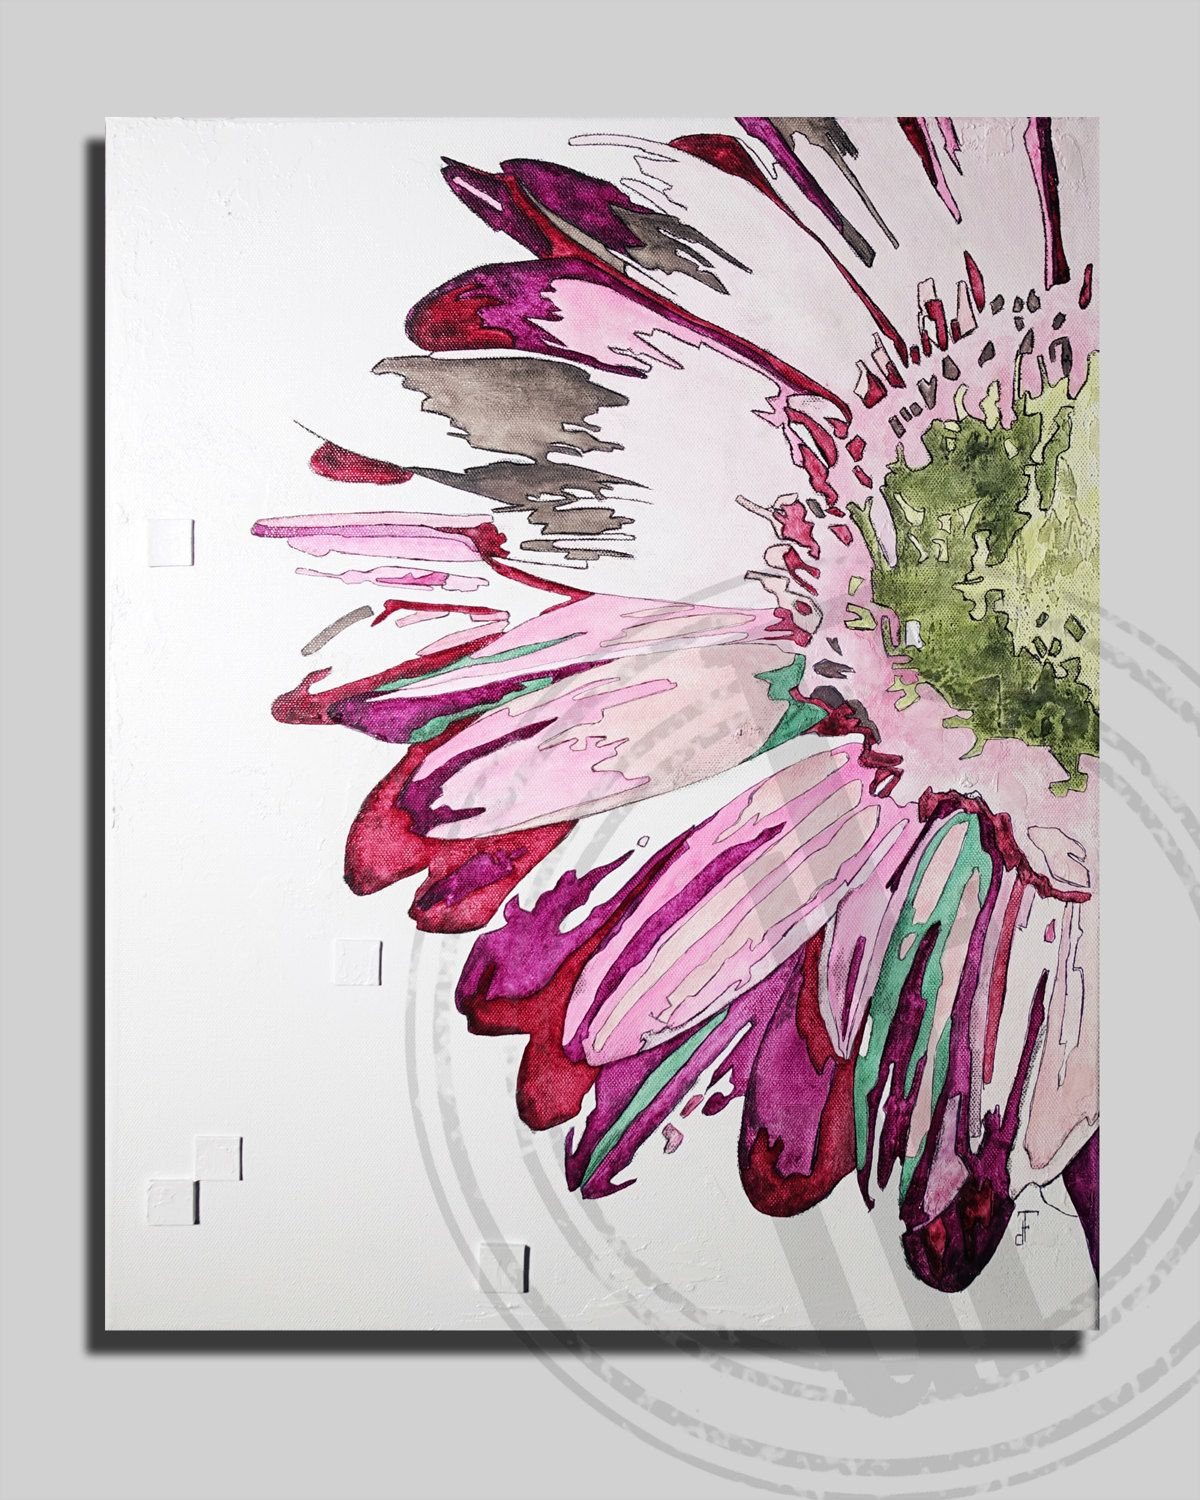 Tableau Art Moderne Flower Floral Art Textured On Canvas 16x20 Inches Pink